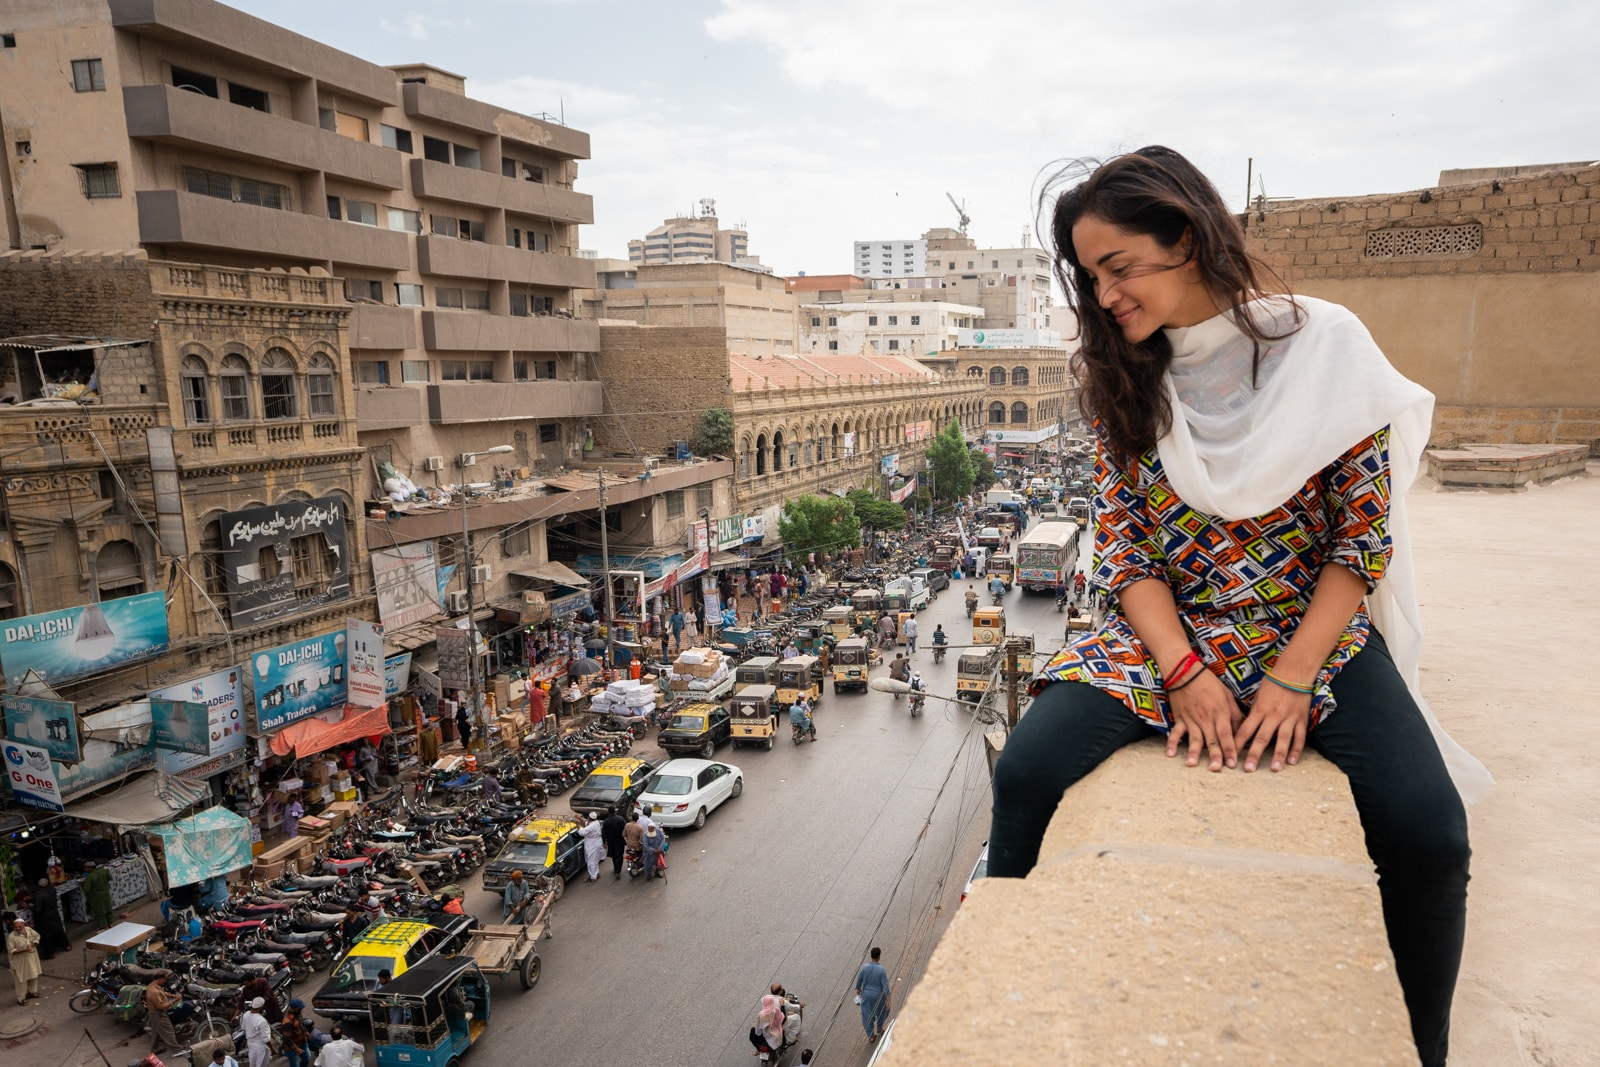 Female traveler overlooking streets of Karachi